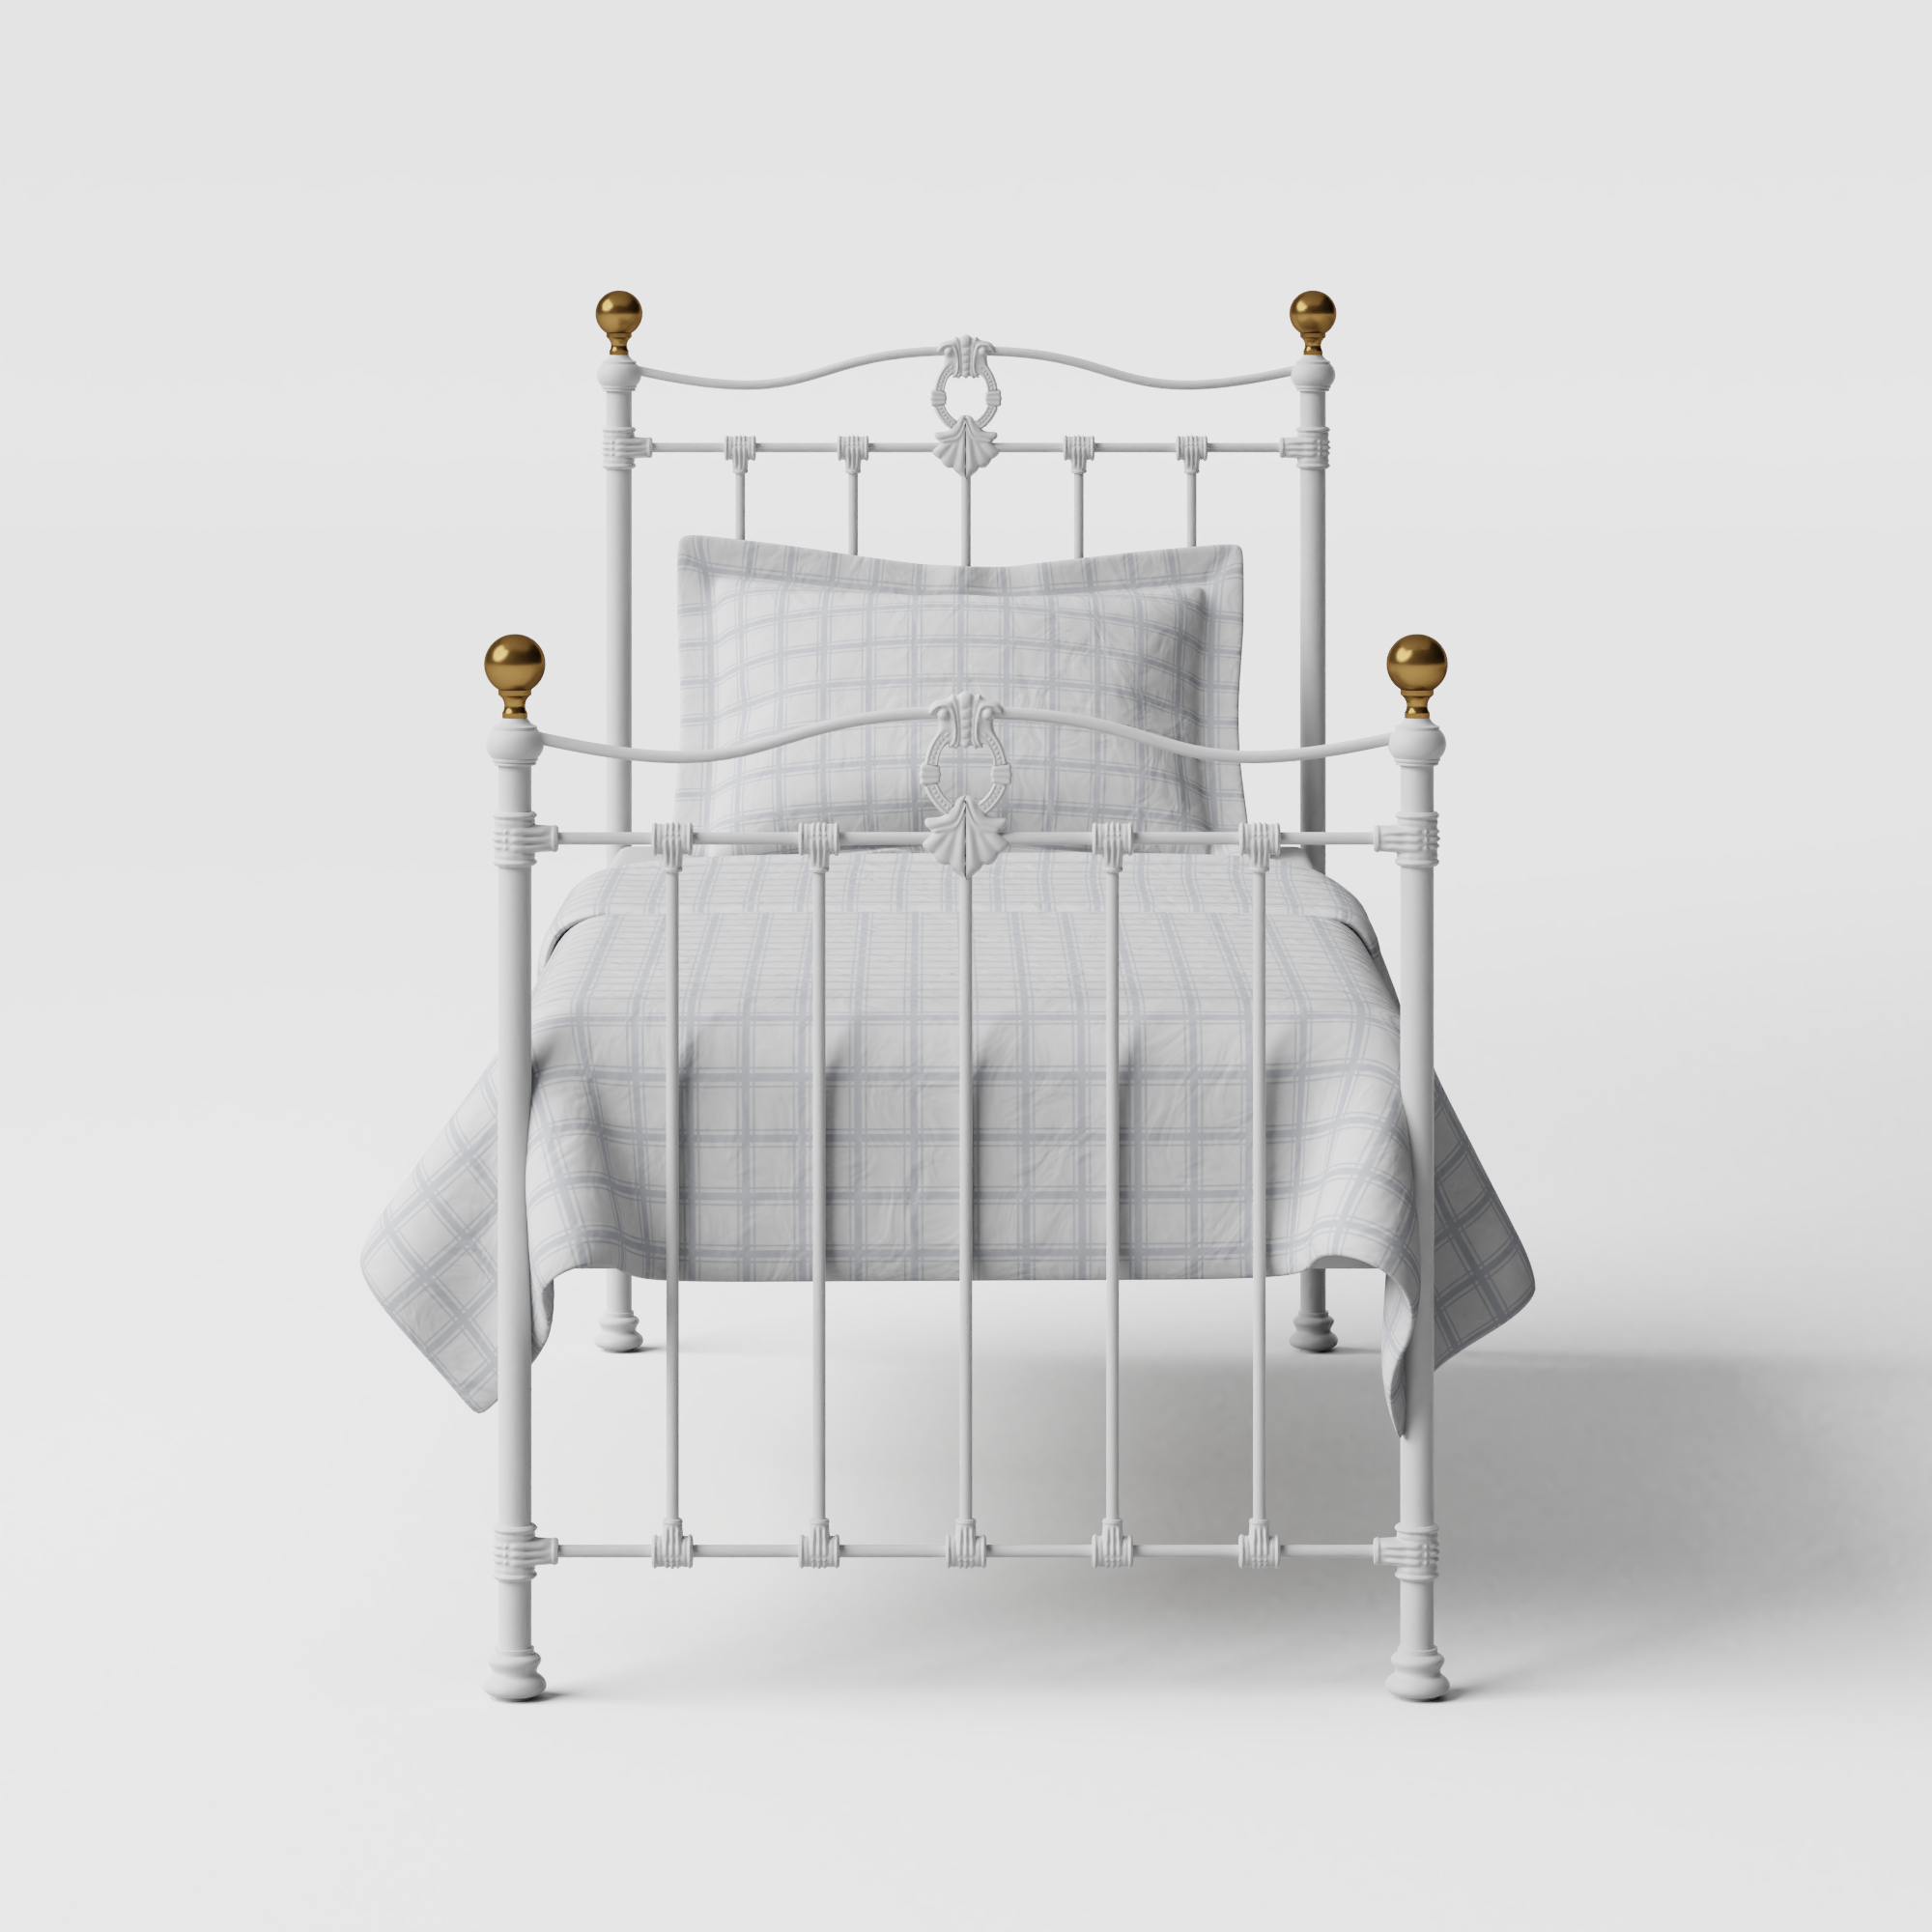 Tulsk iron/metal single bed in white